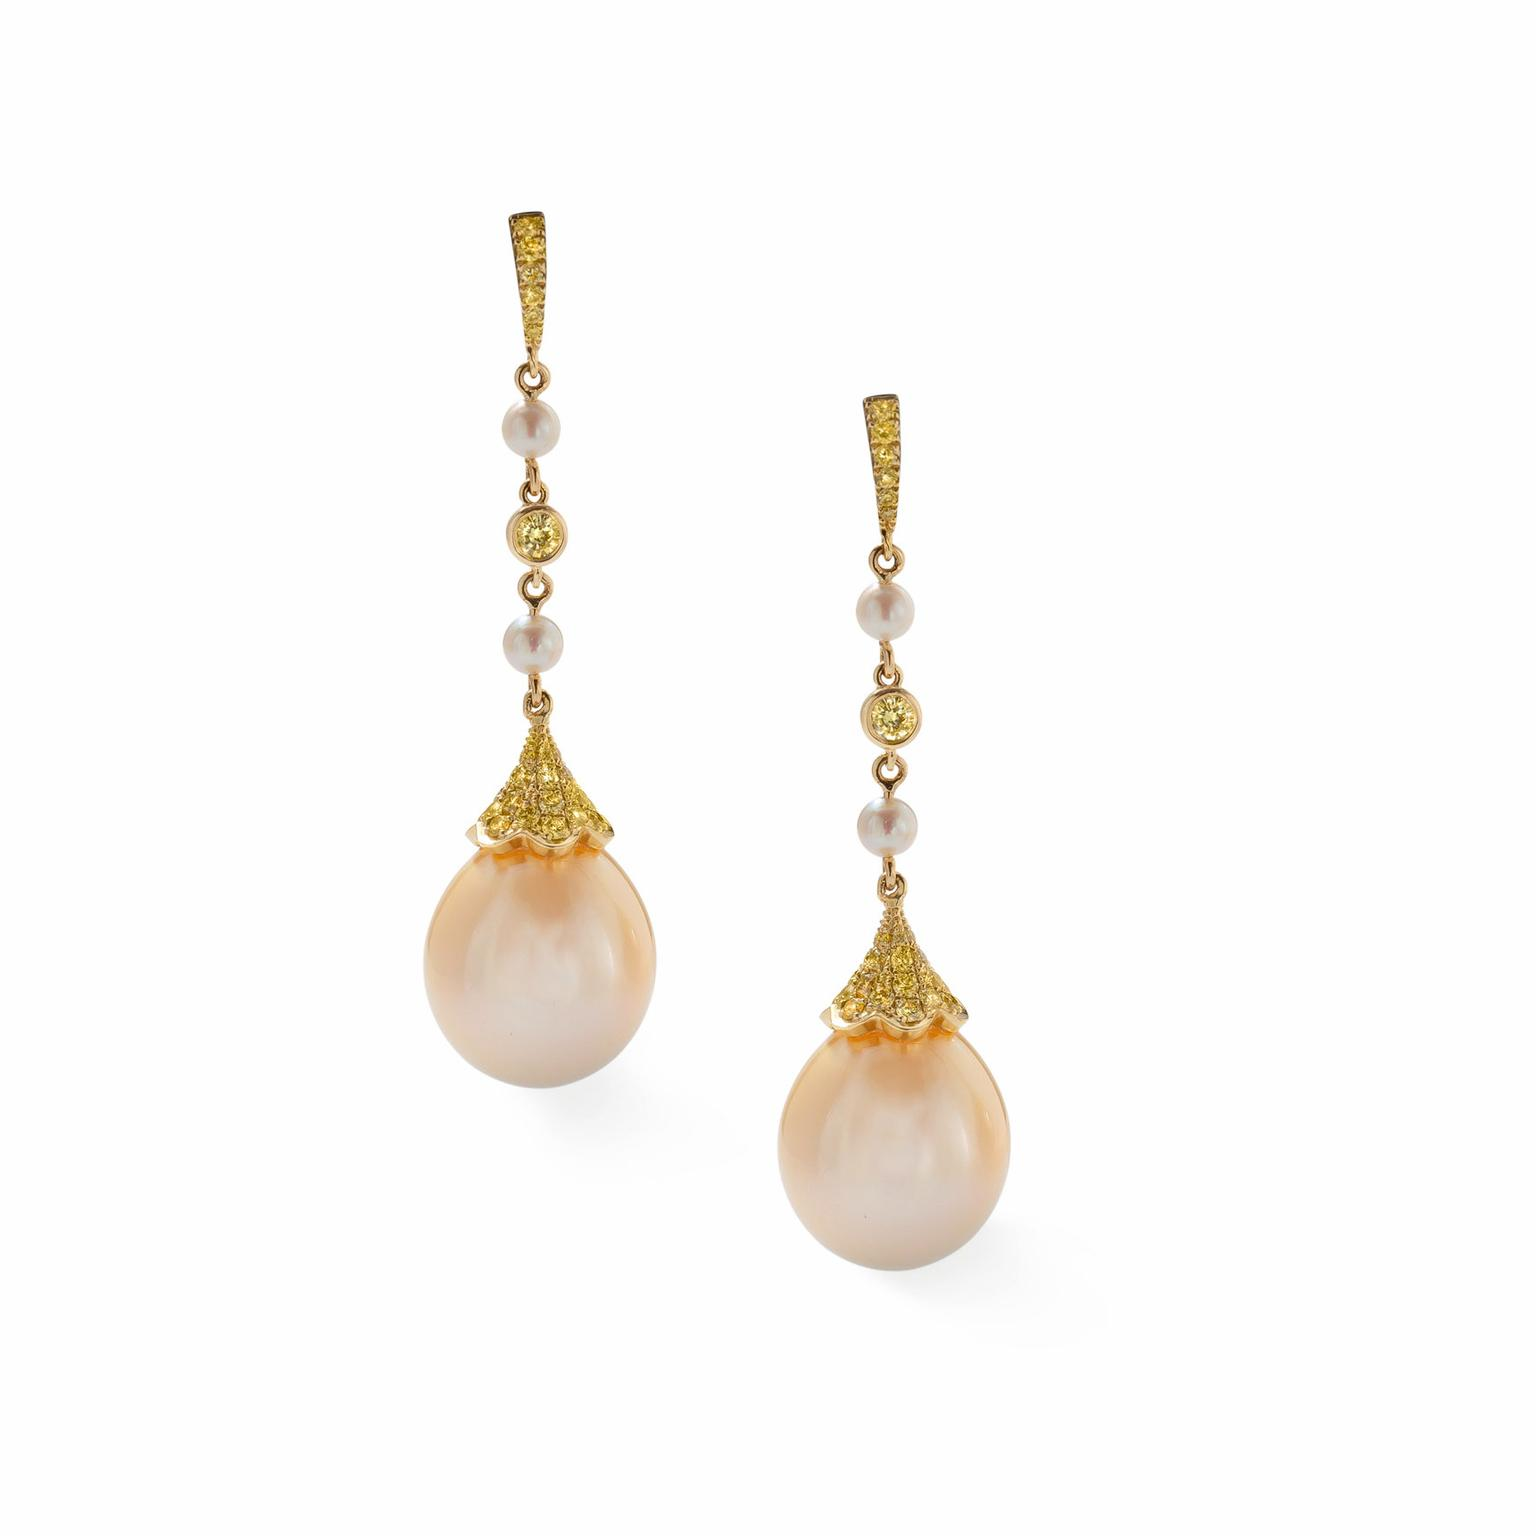 Boodles pearl earrings